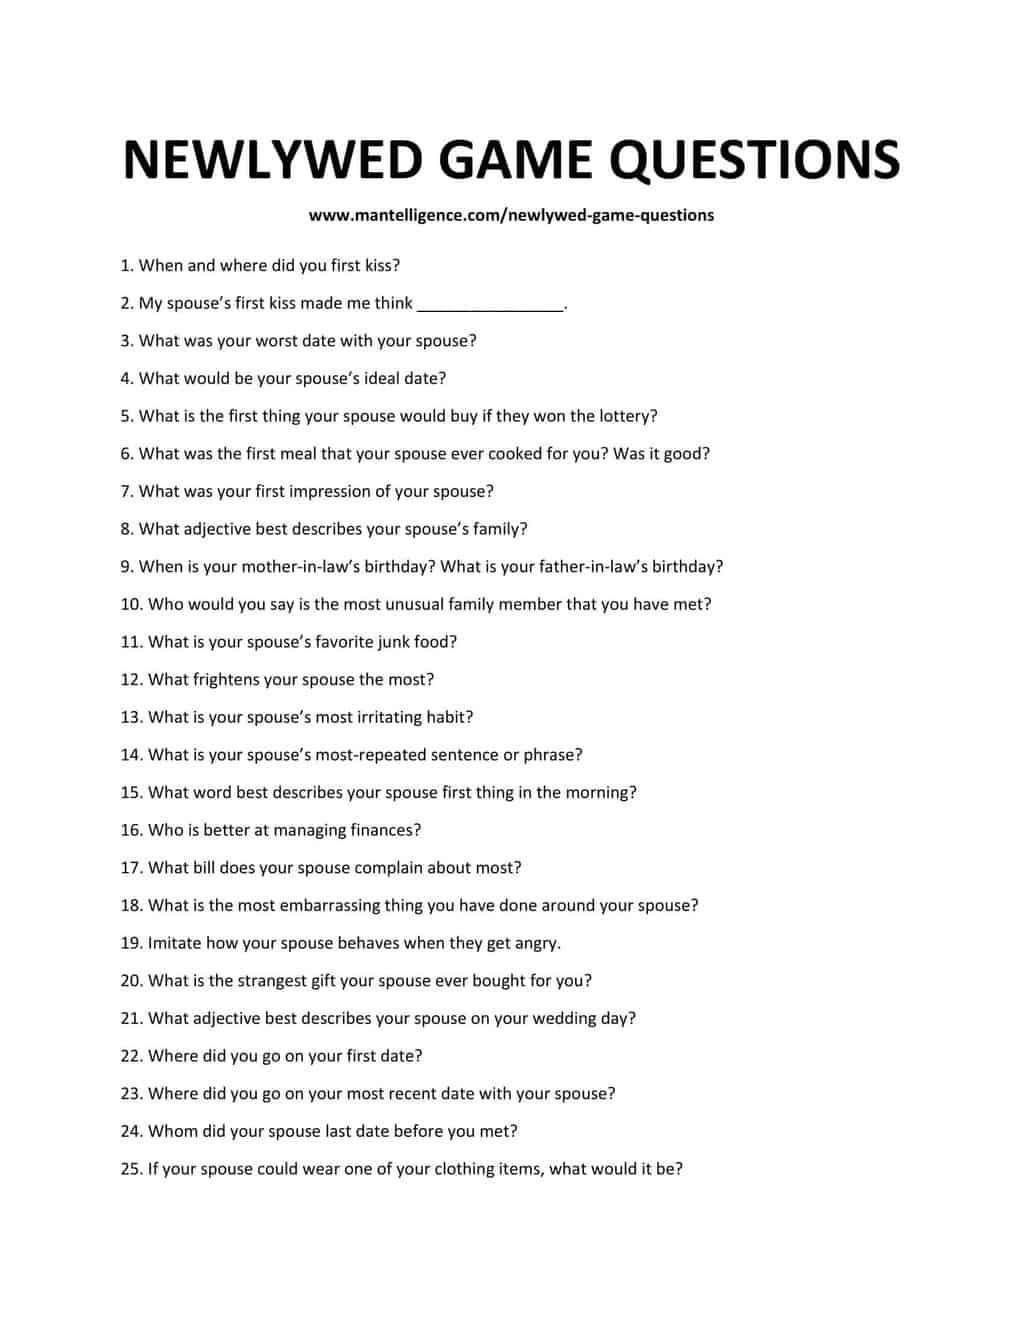 106 Newlywed Game Questions